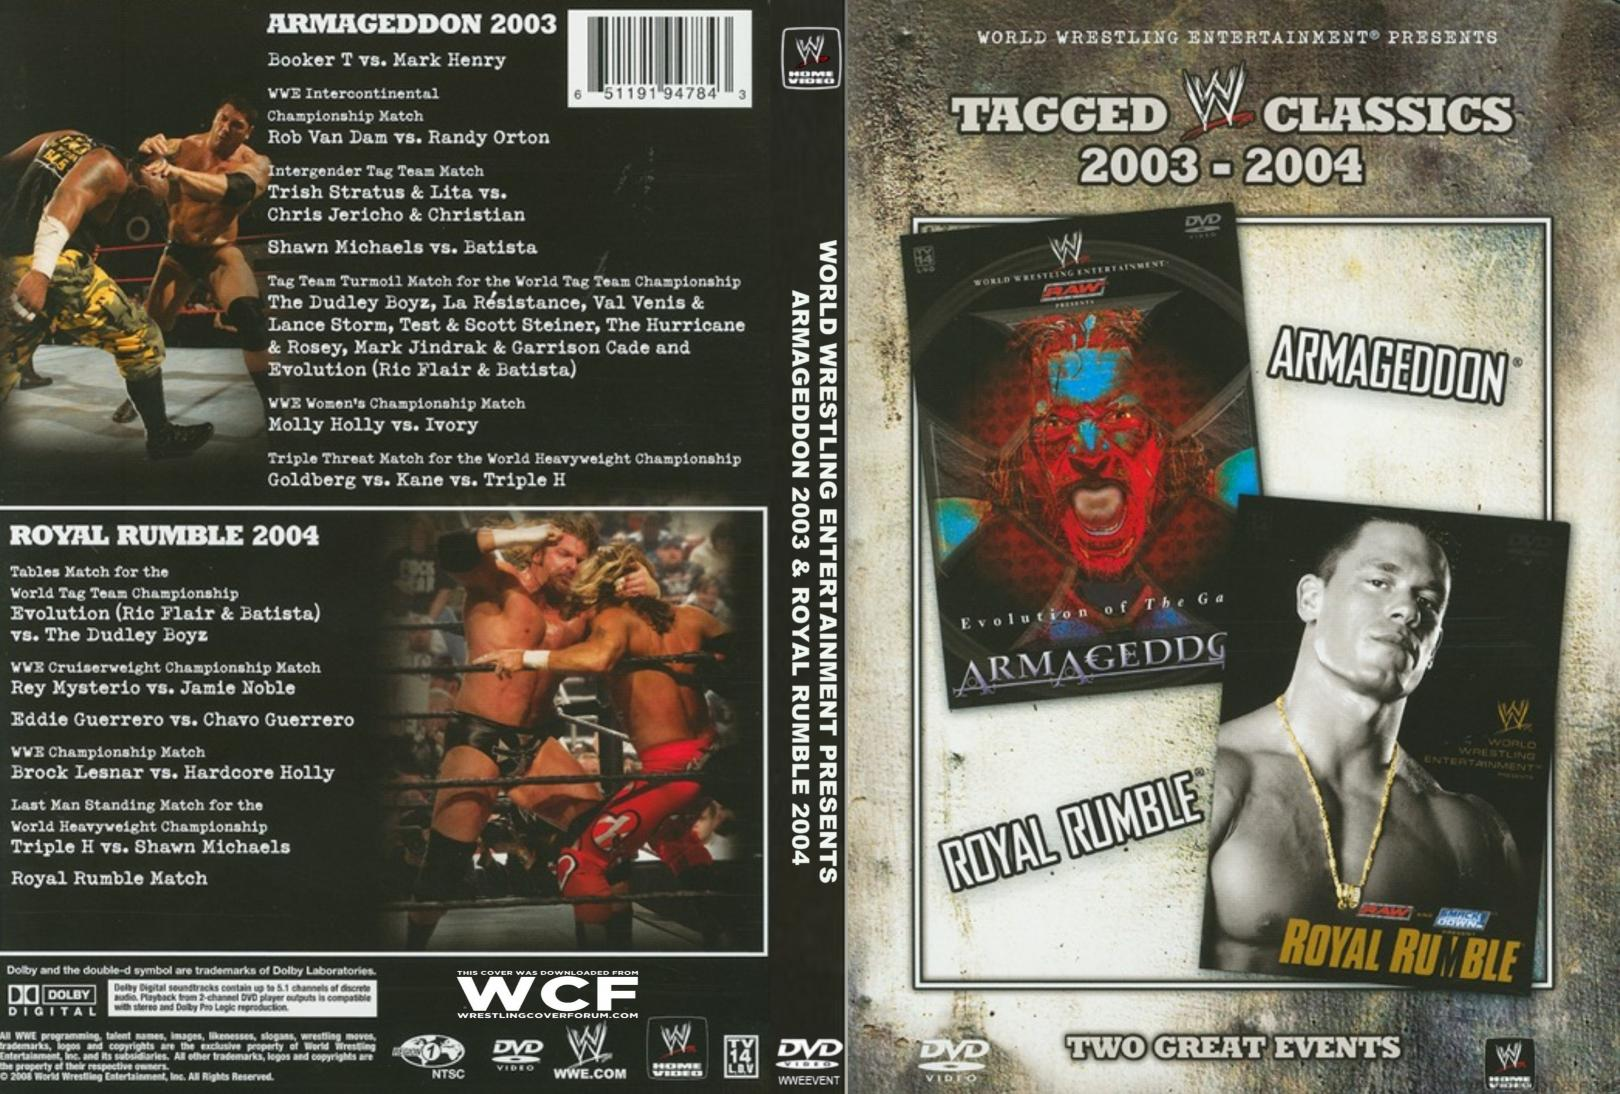 WWE%20TAGGED%20CLASSICS%202003-2004%20ARMAGEDDON%20&%20ROYAL%20RUMBLE